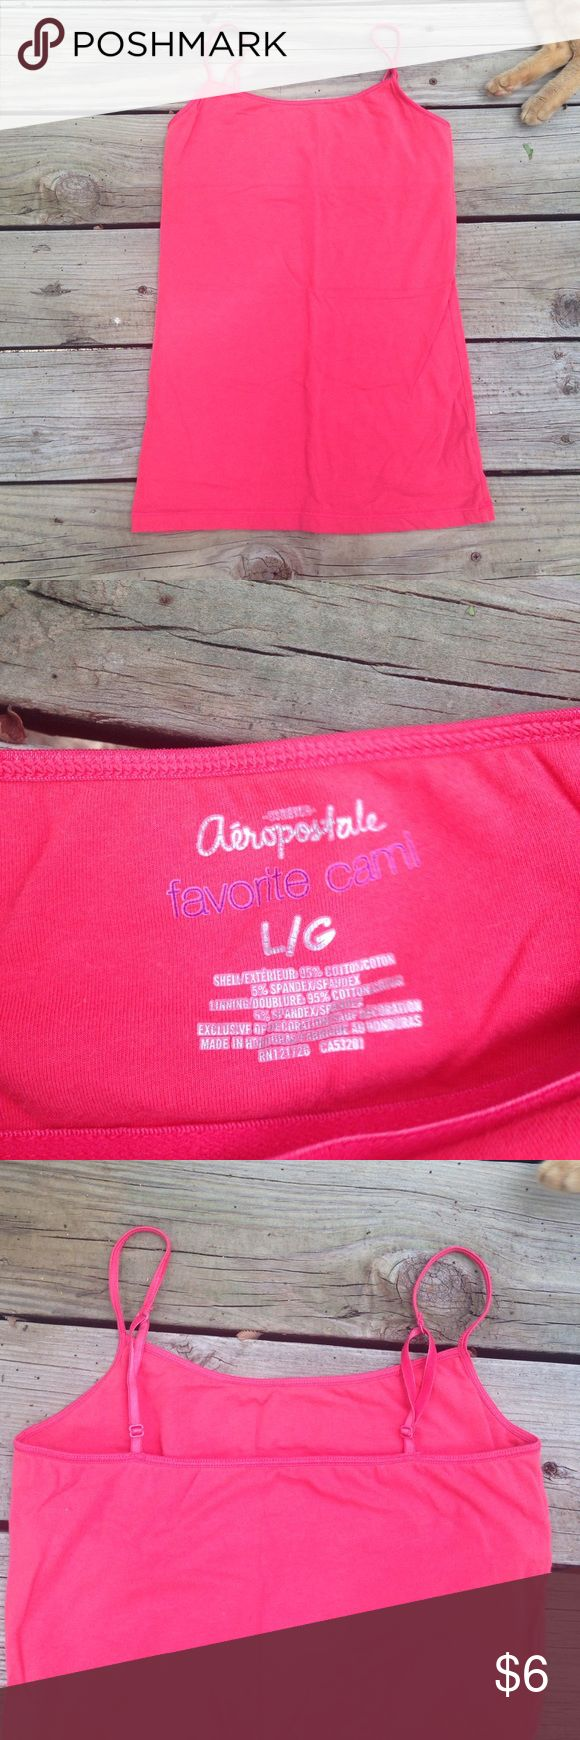 Aeropostale Pink Cami NWOT aero favorite cami. Adjustable straps and shelf bra. Size L but would fit M too. Aeropostale Tops Camisoles